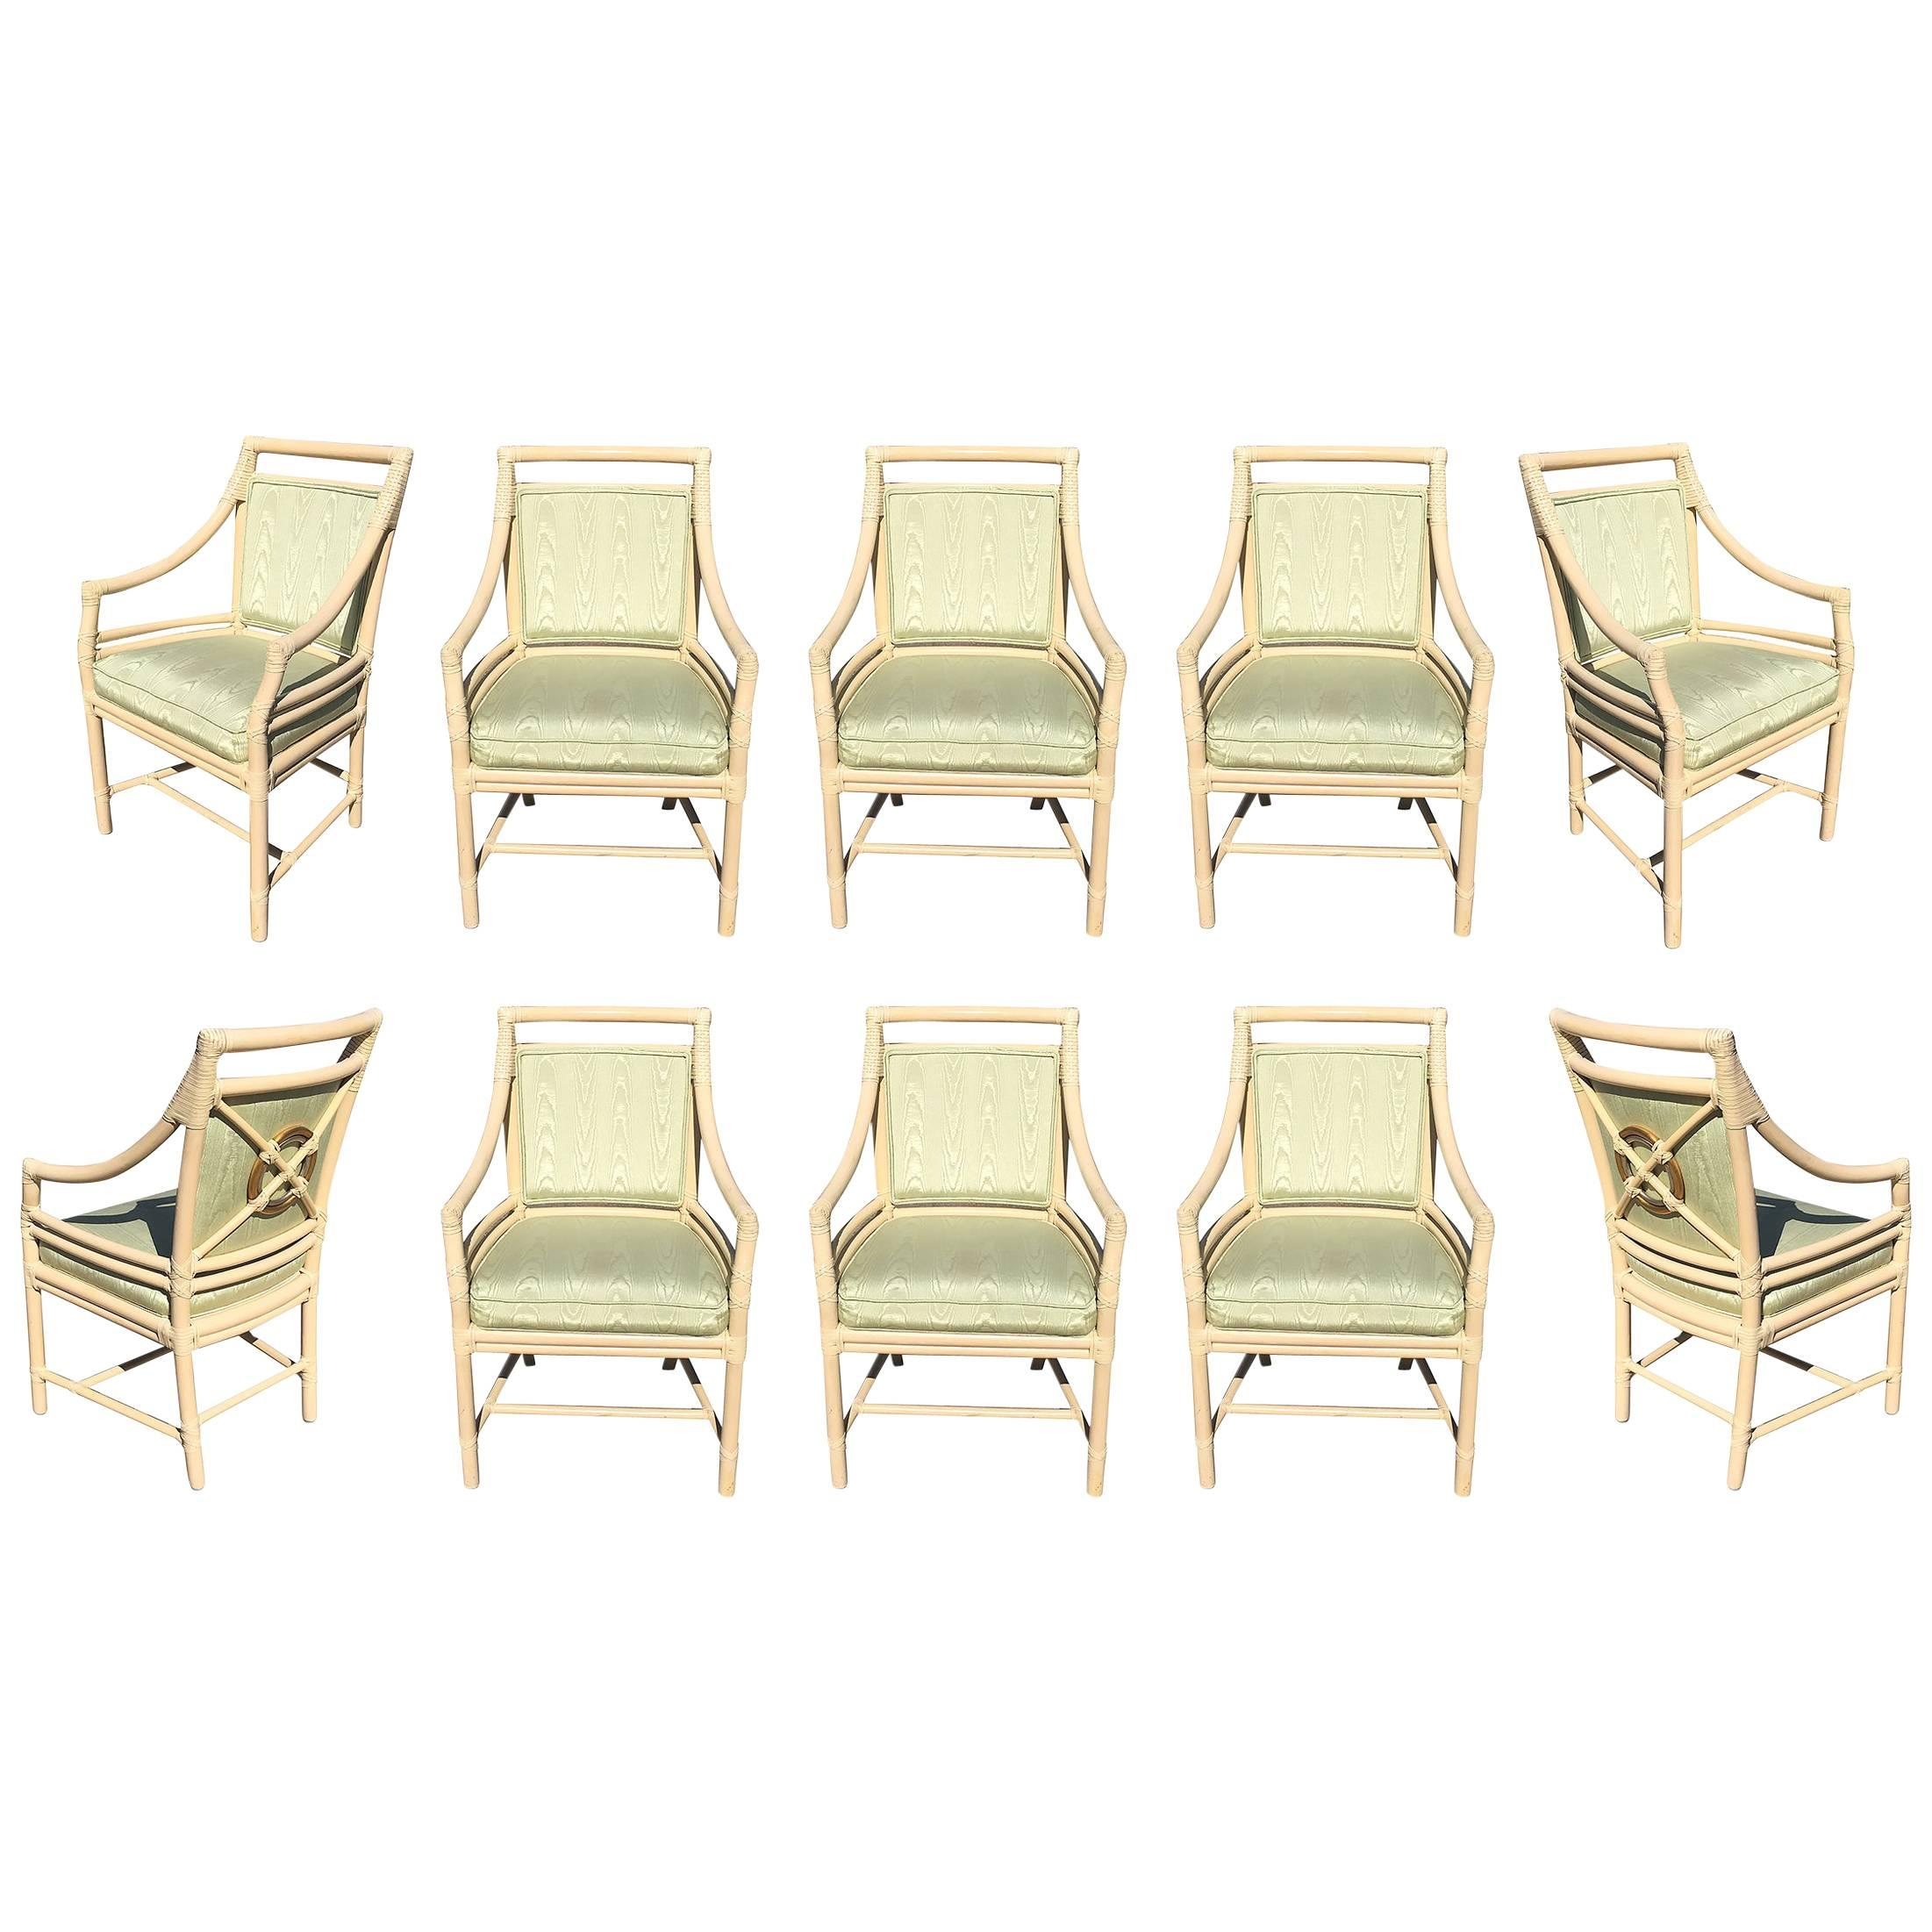 dining chairs set of 4 target ozark trail reclining chair back by mcguire ten for sale at 1stdibs